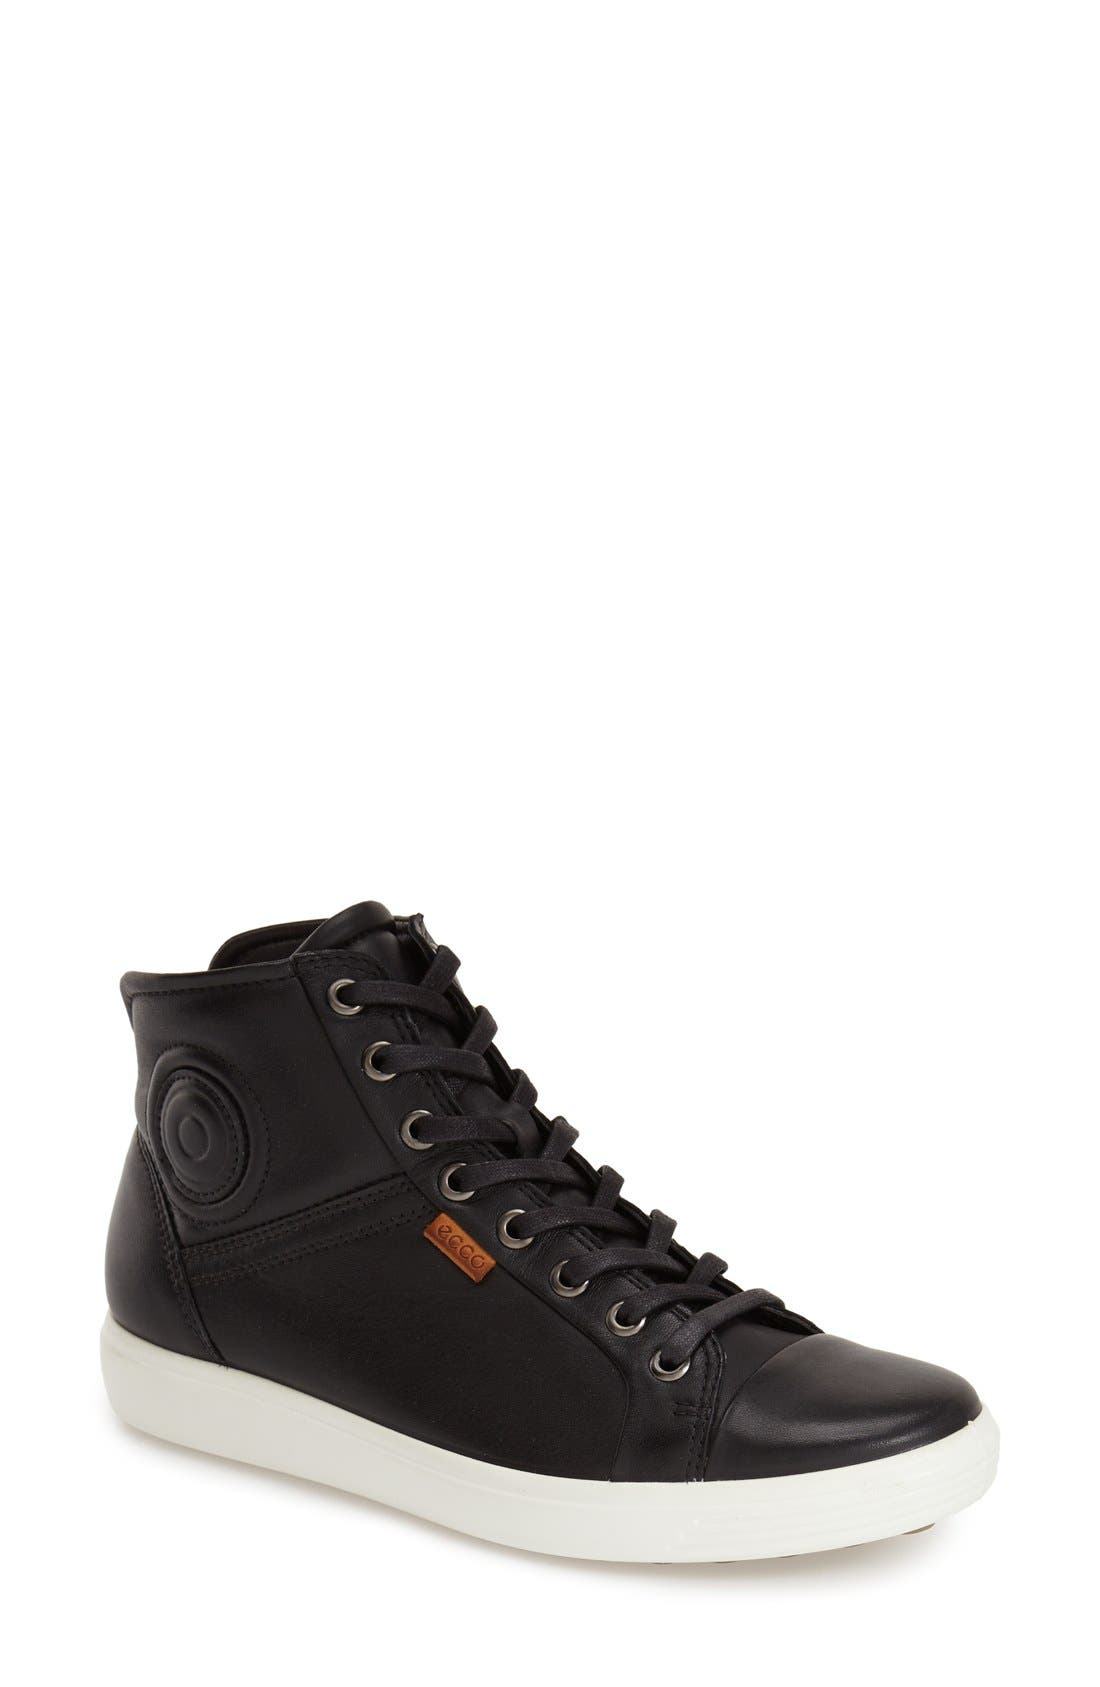 'Soft 7' High Top Sneaker,                             Main thumbnail 1, color,                             001